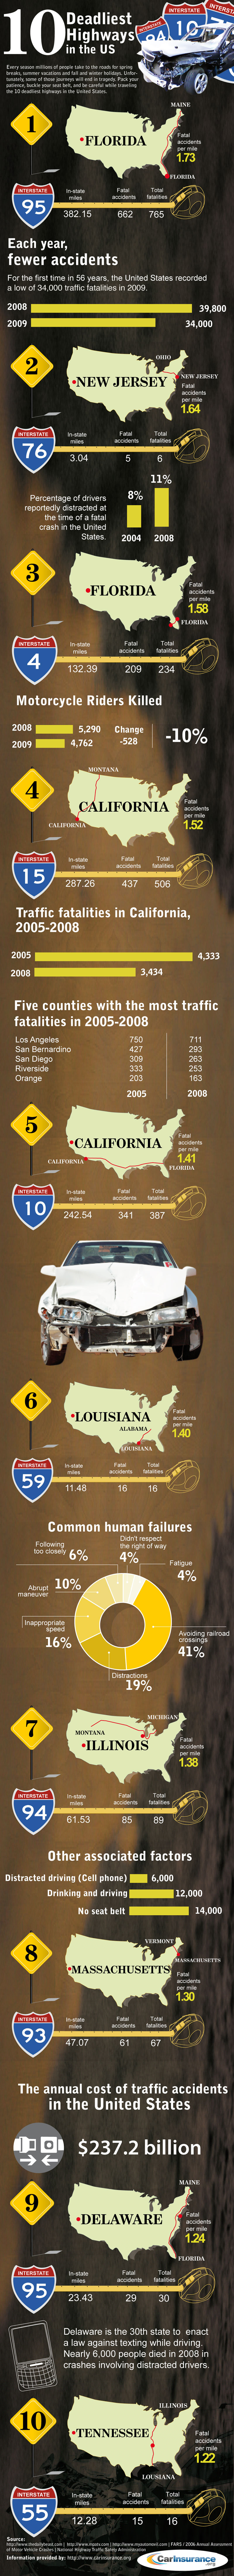 Deadliest Highways in the US